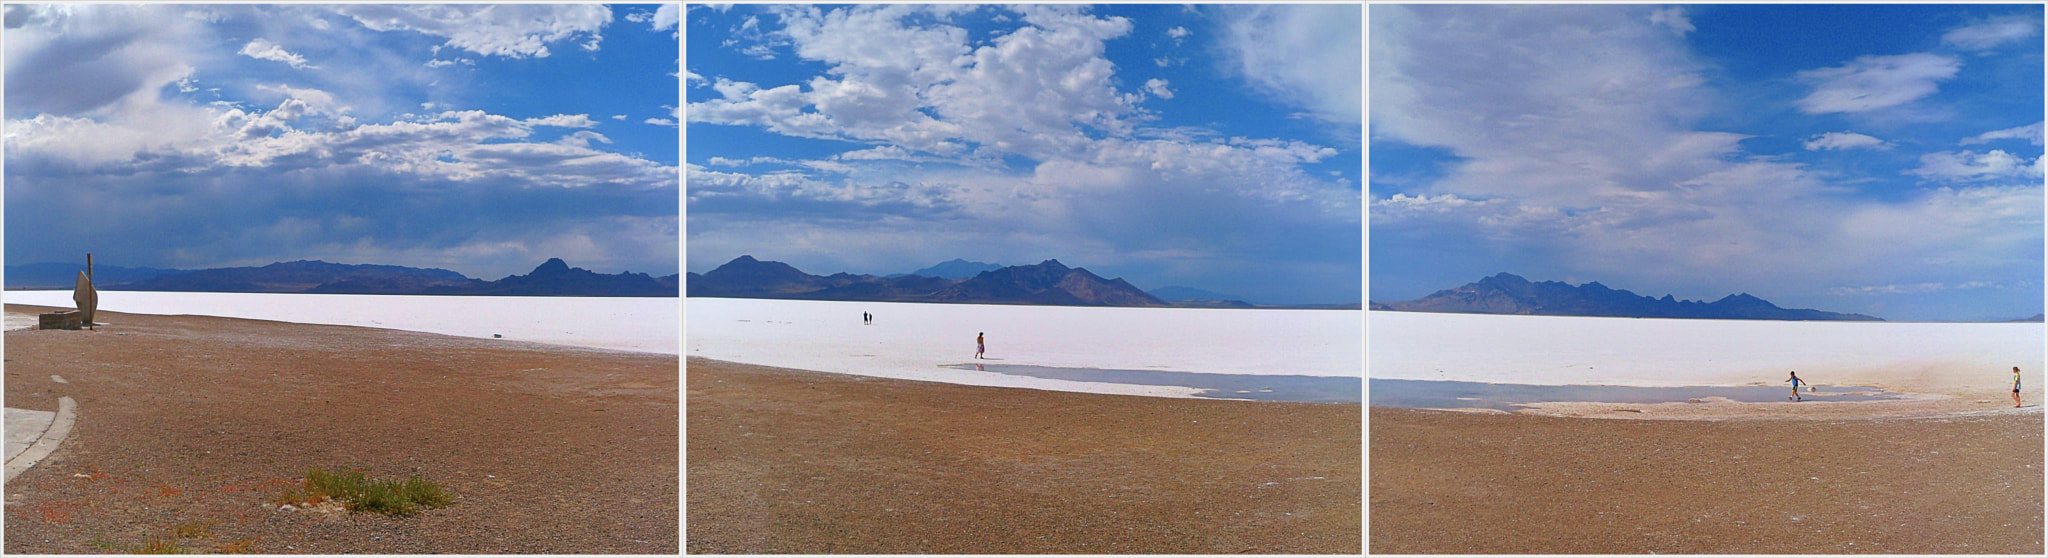 Photograph Triptych of Bonneville Salt Flats by Nancy Andersen on 500px